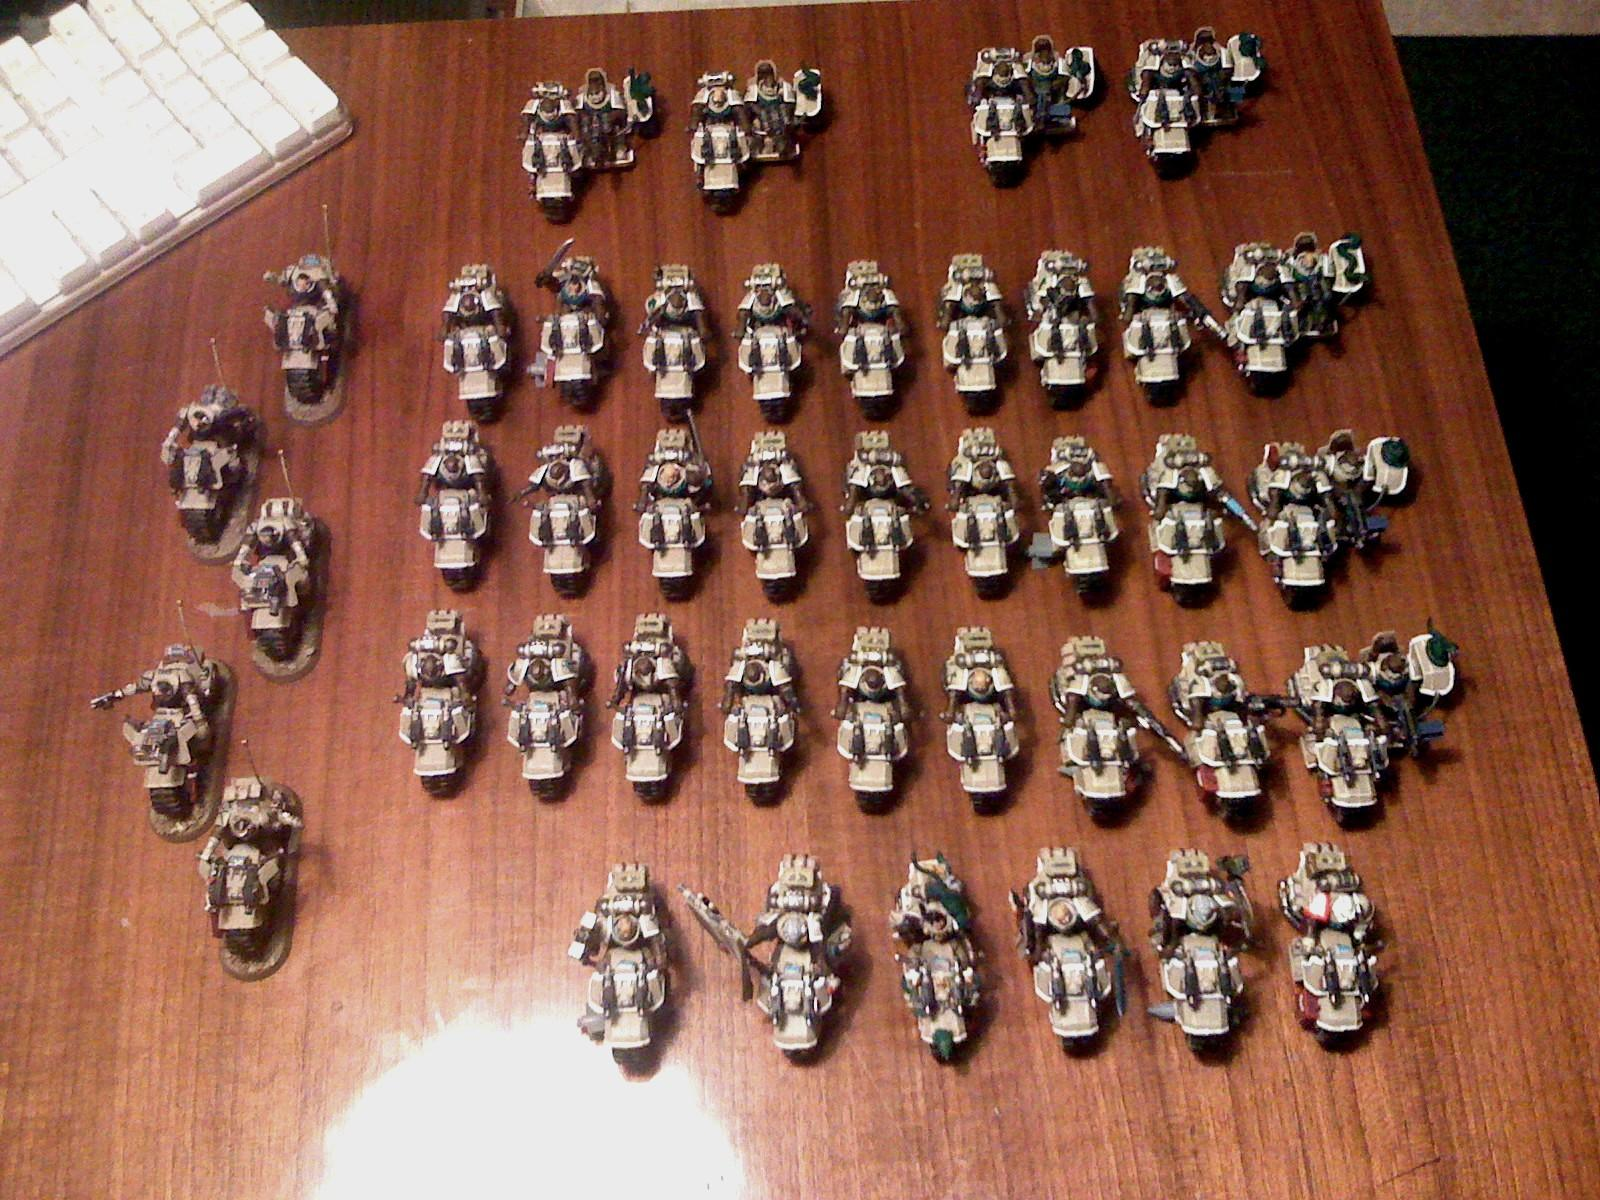 Army, Sand Vipers, Space Marines, Warhammer 40,000